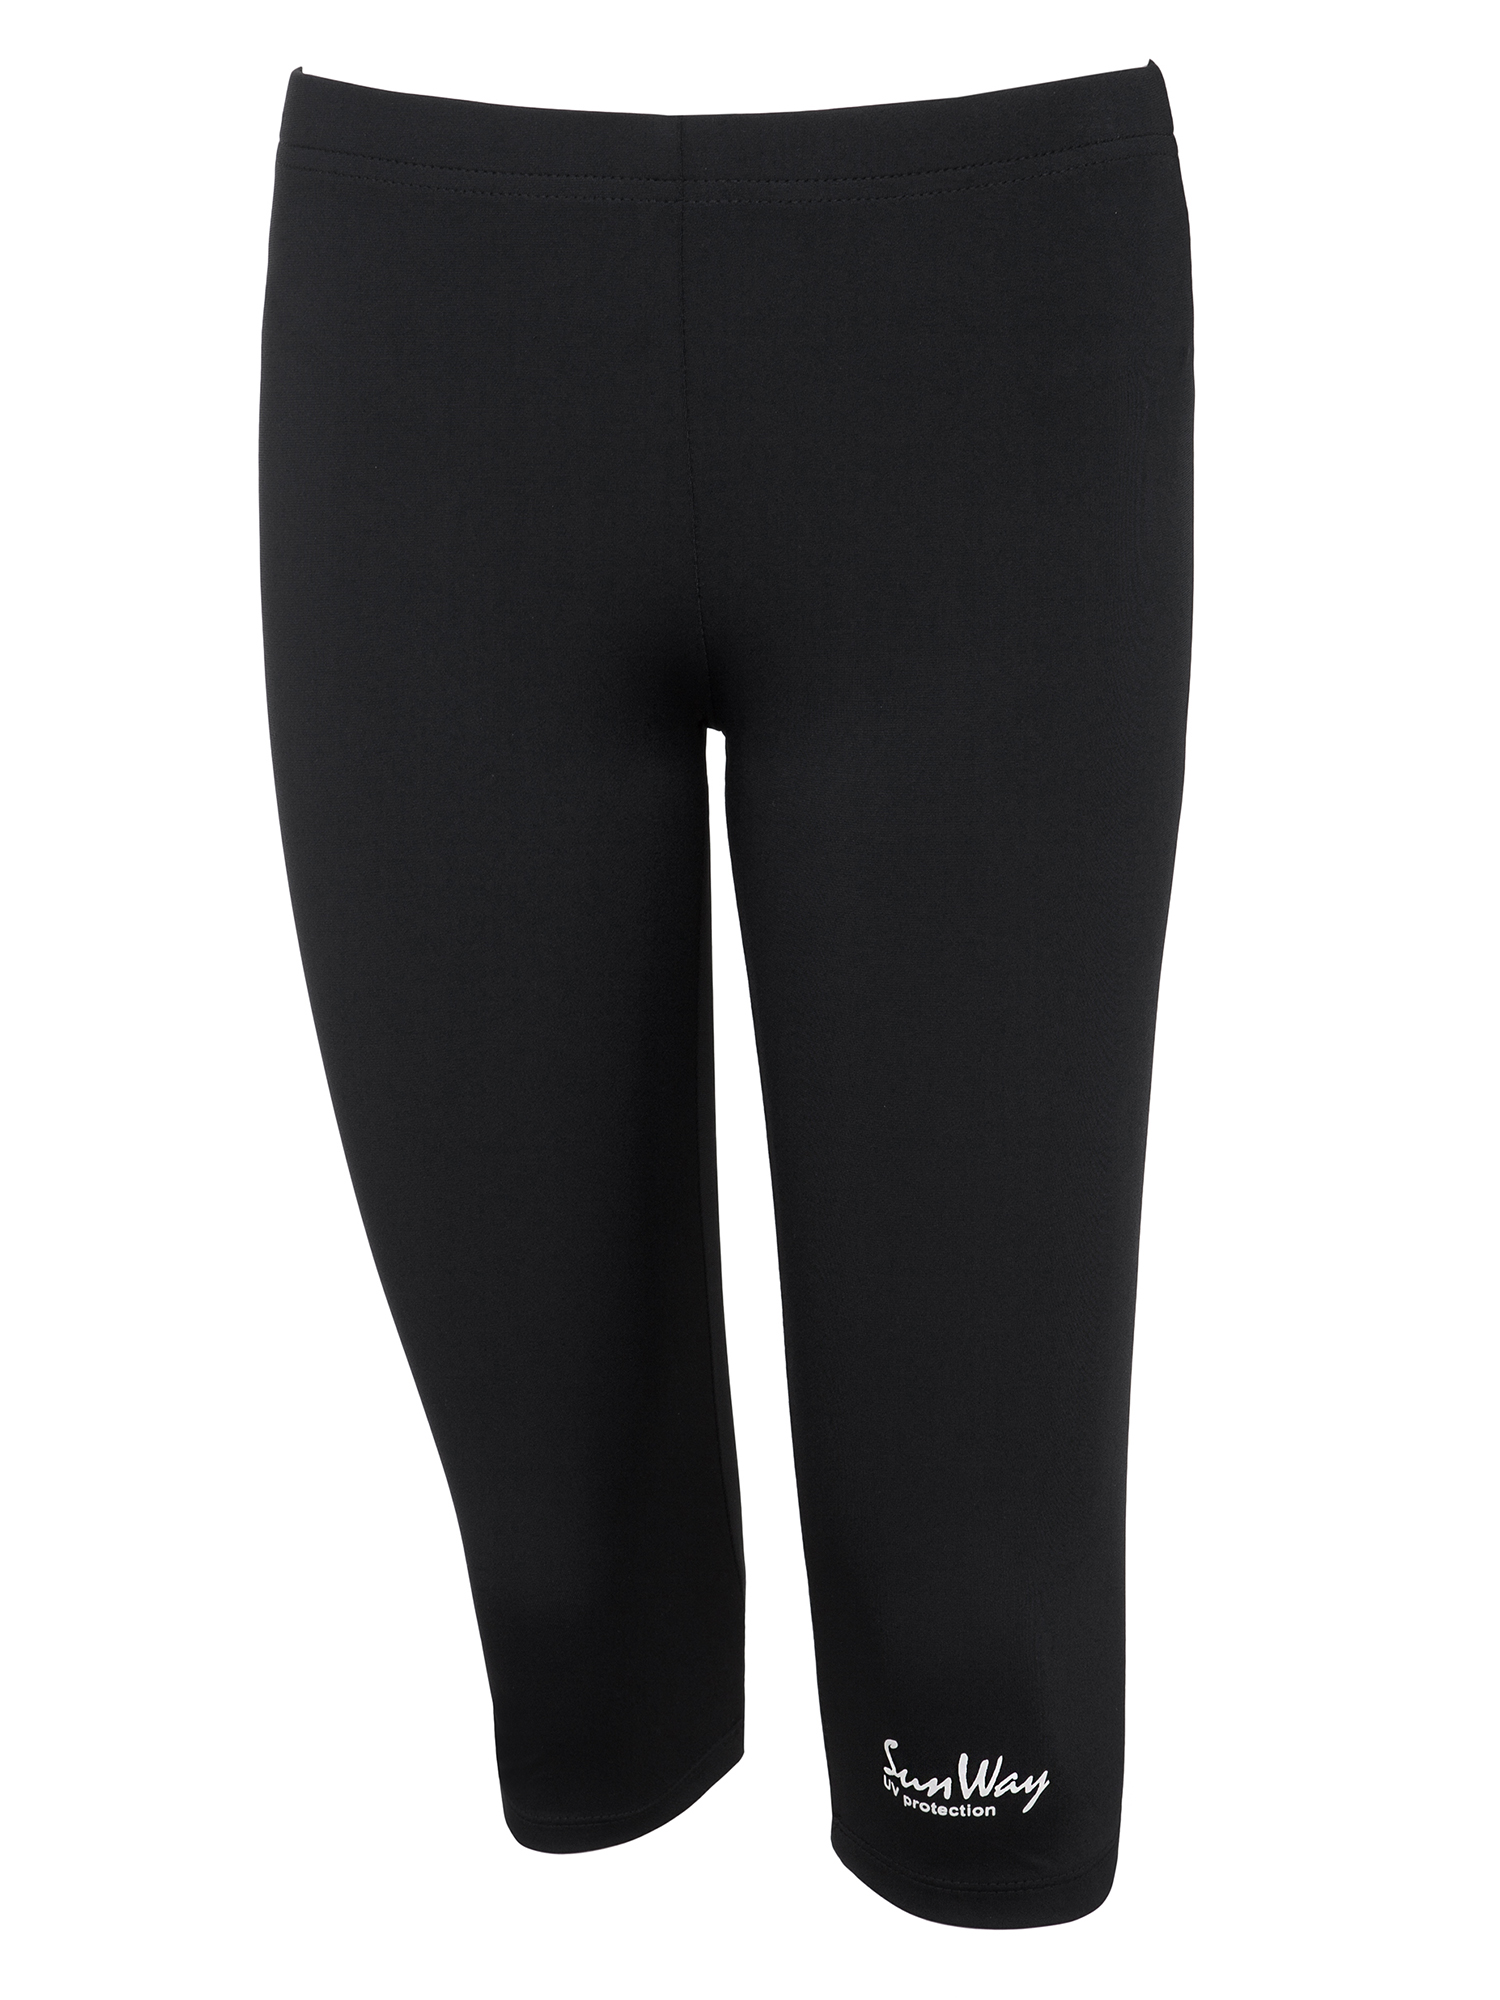 d954bf15a169d Home>Women>Shop by Products>Modest swimwear>Three Quarter Length Swim Tights